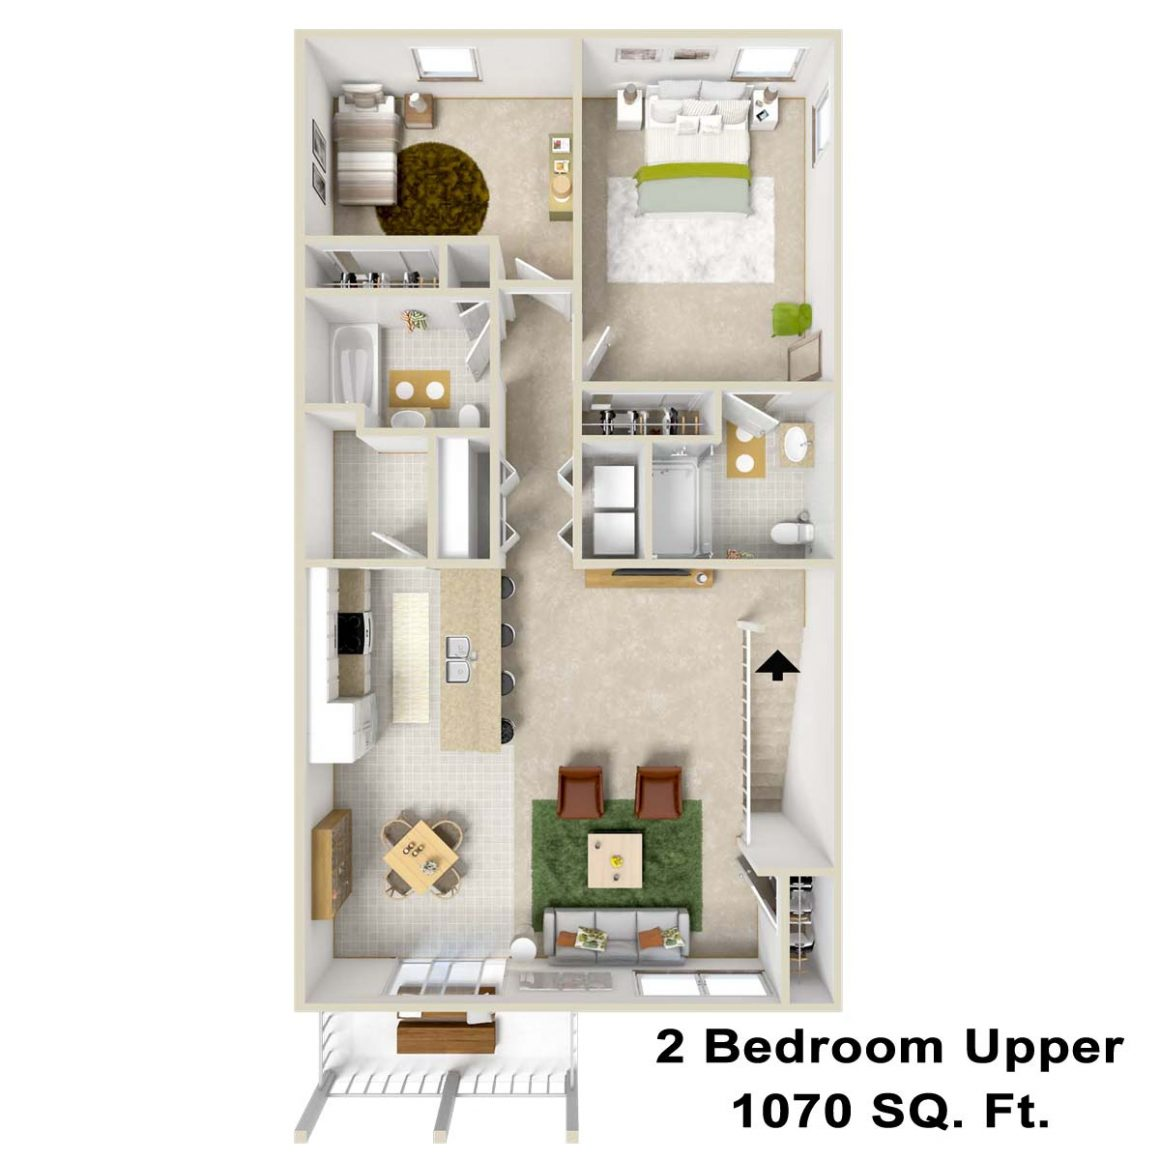 2 bedroom upper